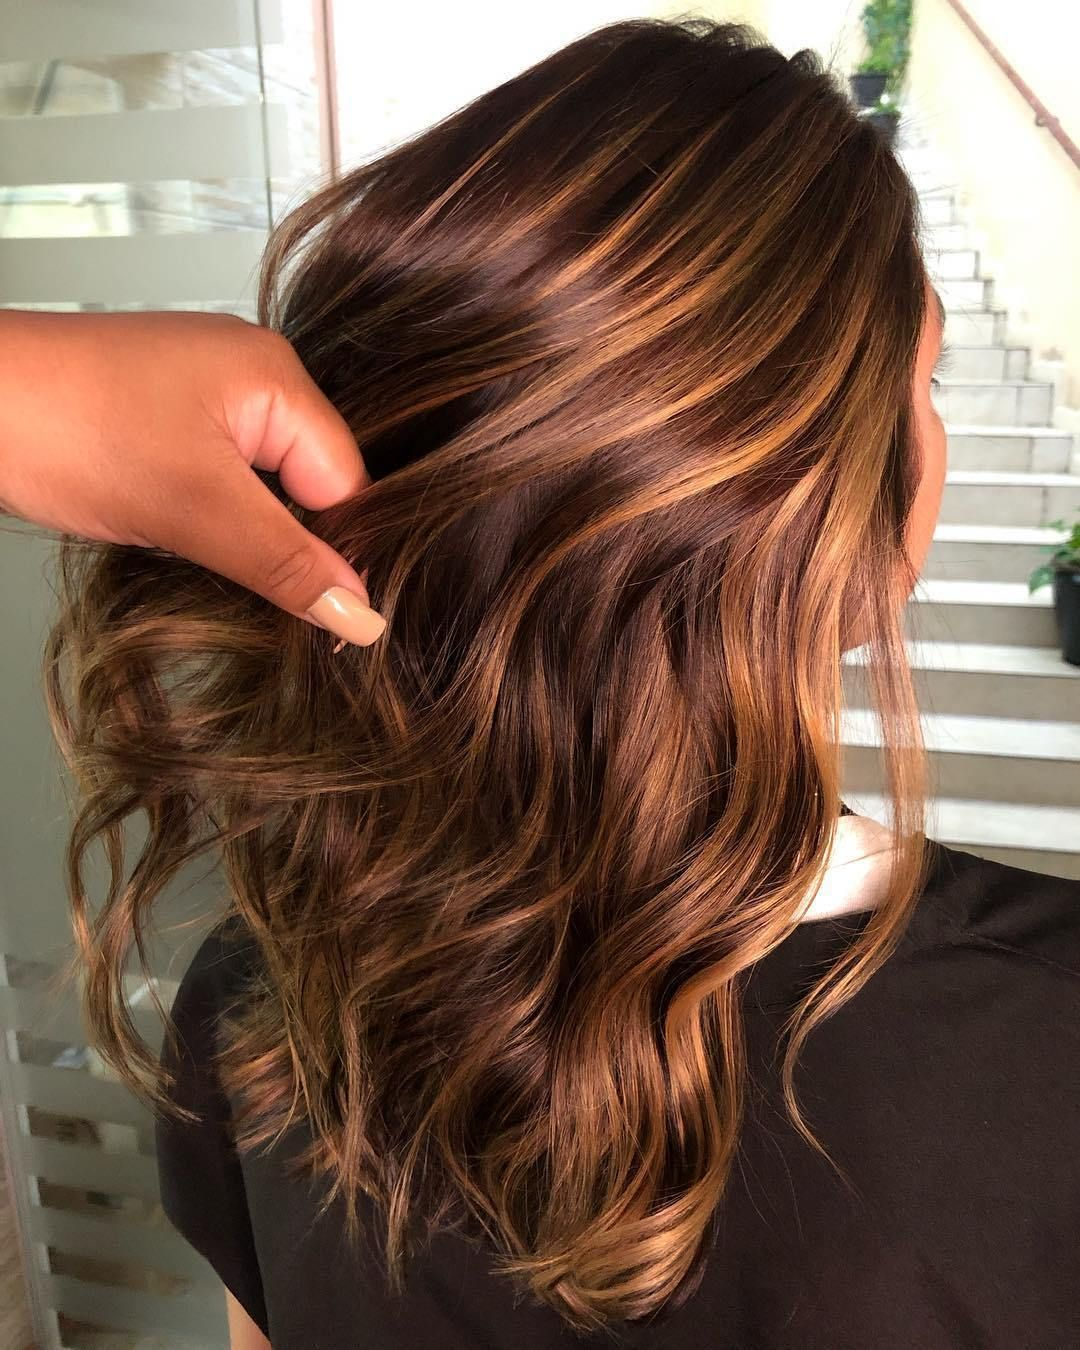 60 Looks With Caramel Highlights On Brown And Dark Brown Hair In